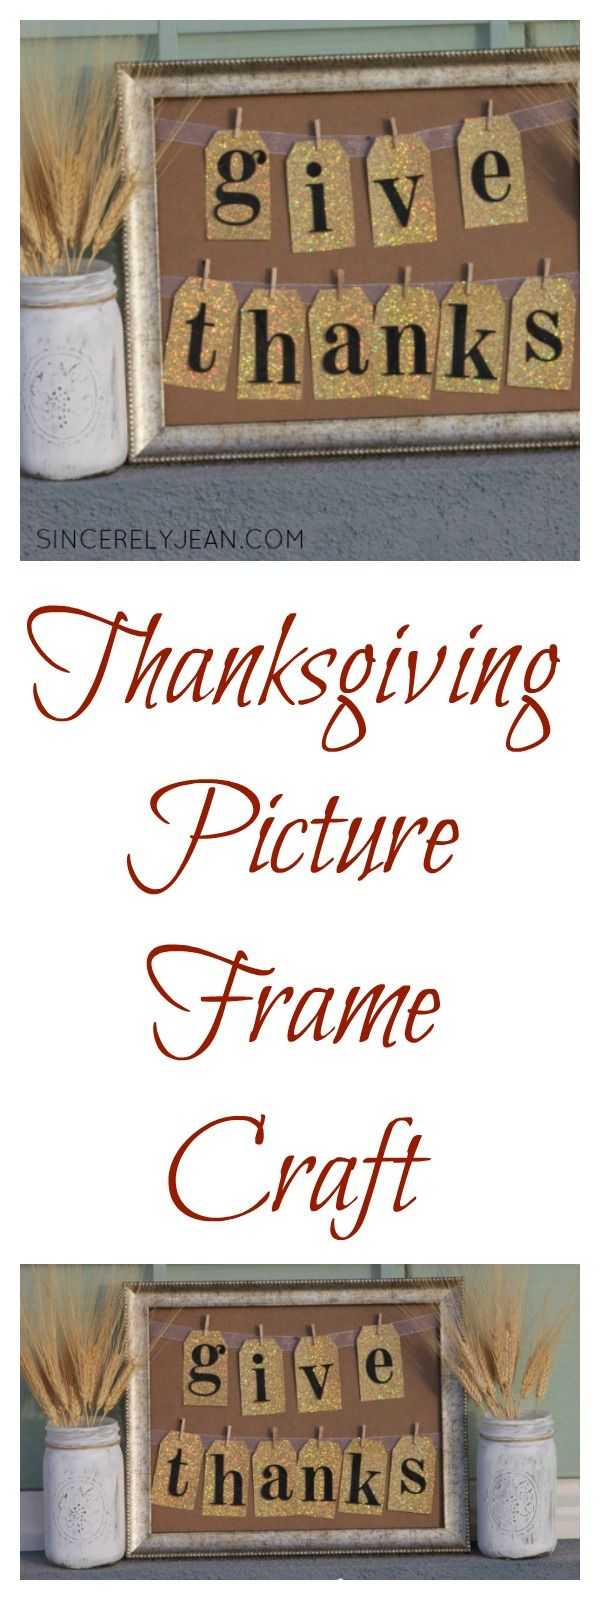 Give Thanks Picture Frame, Thanksgiving craft  - SincerelyJean.com